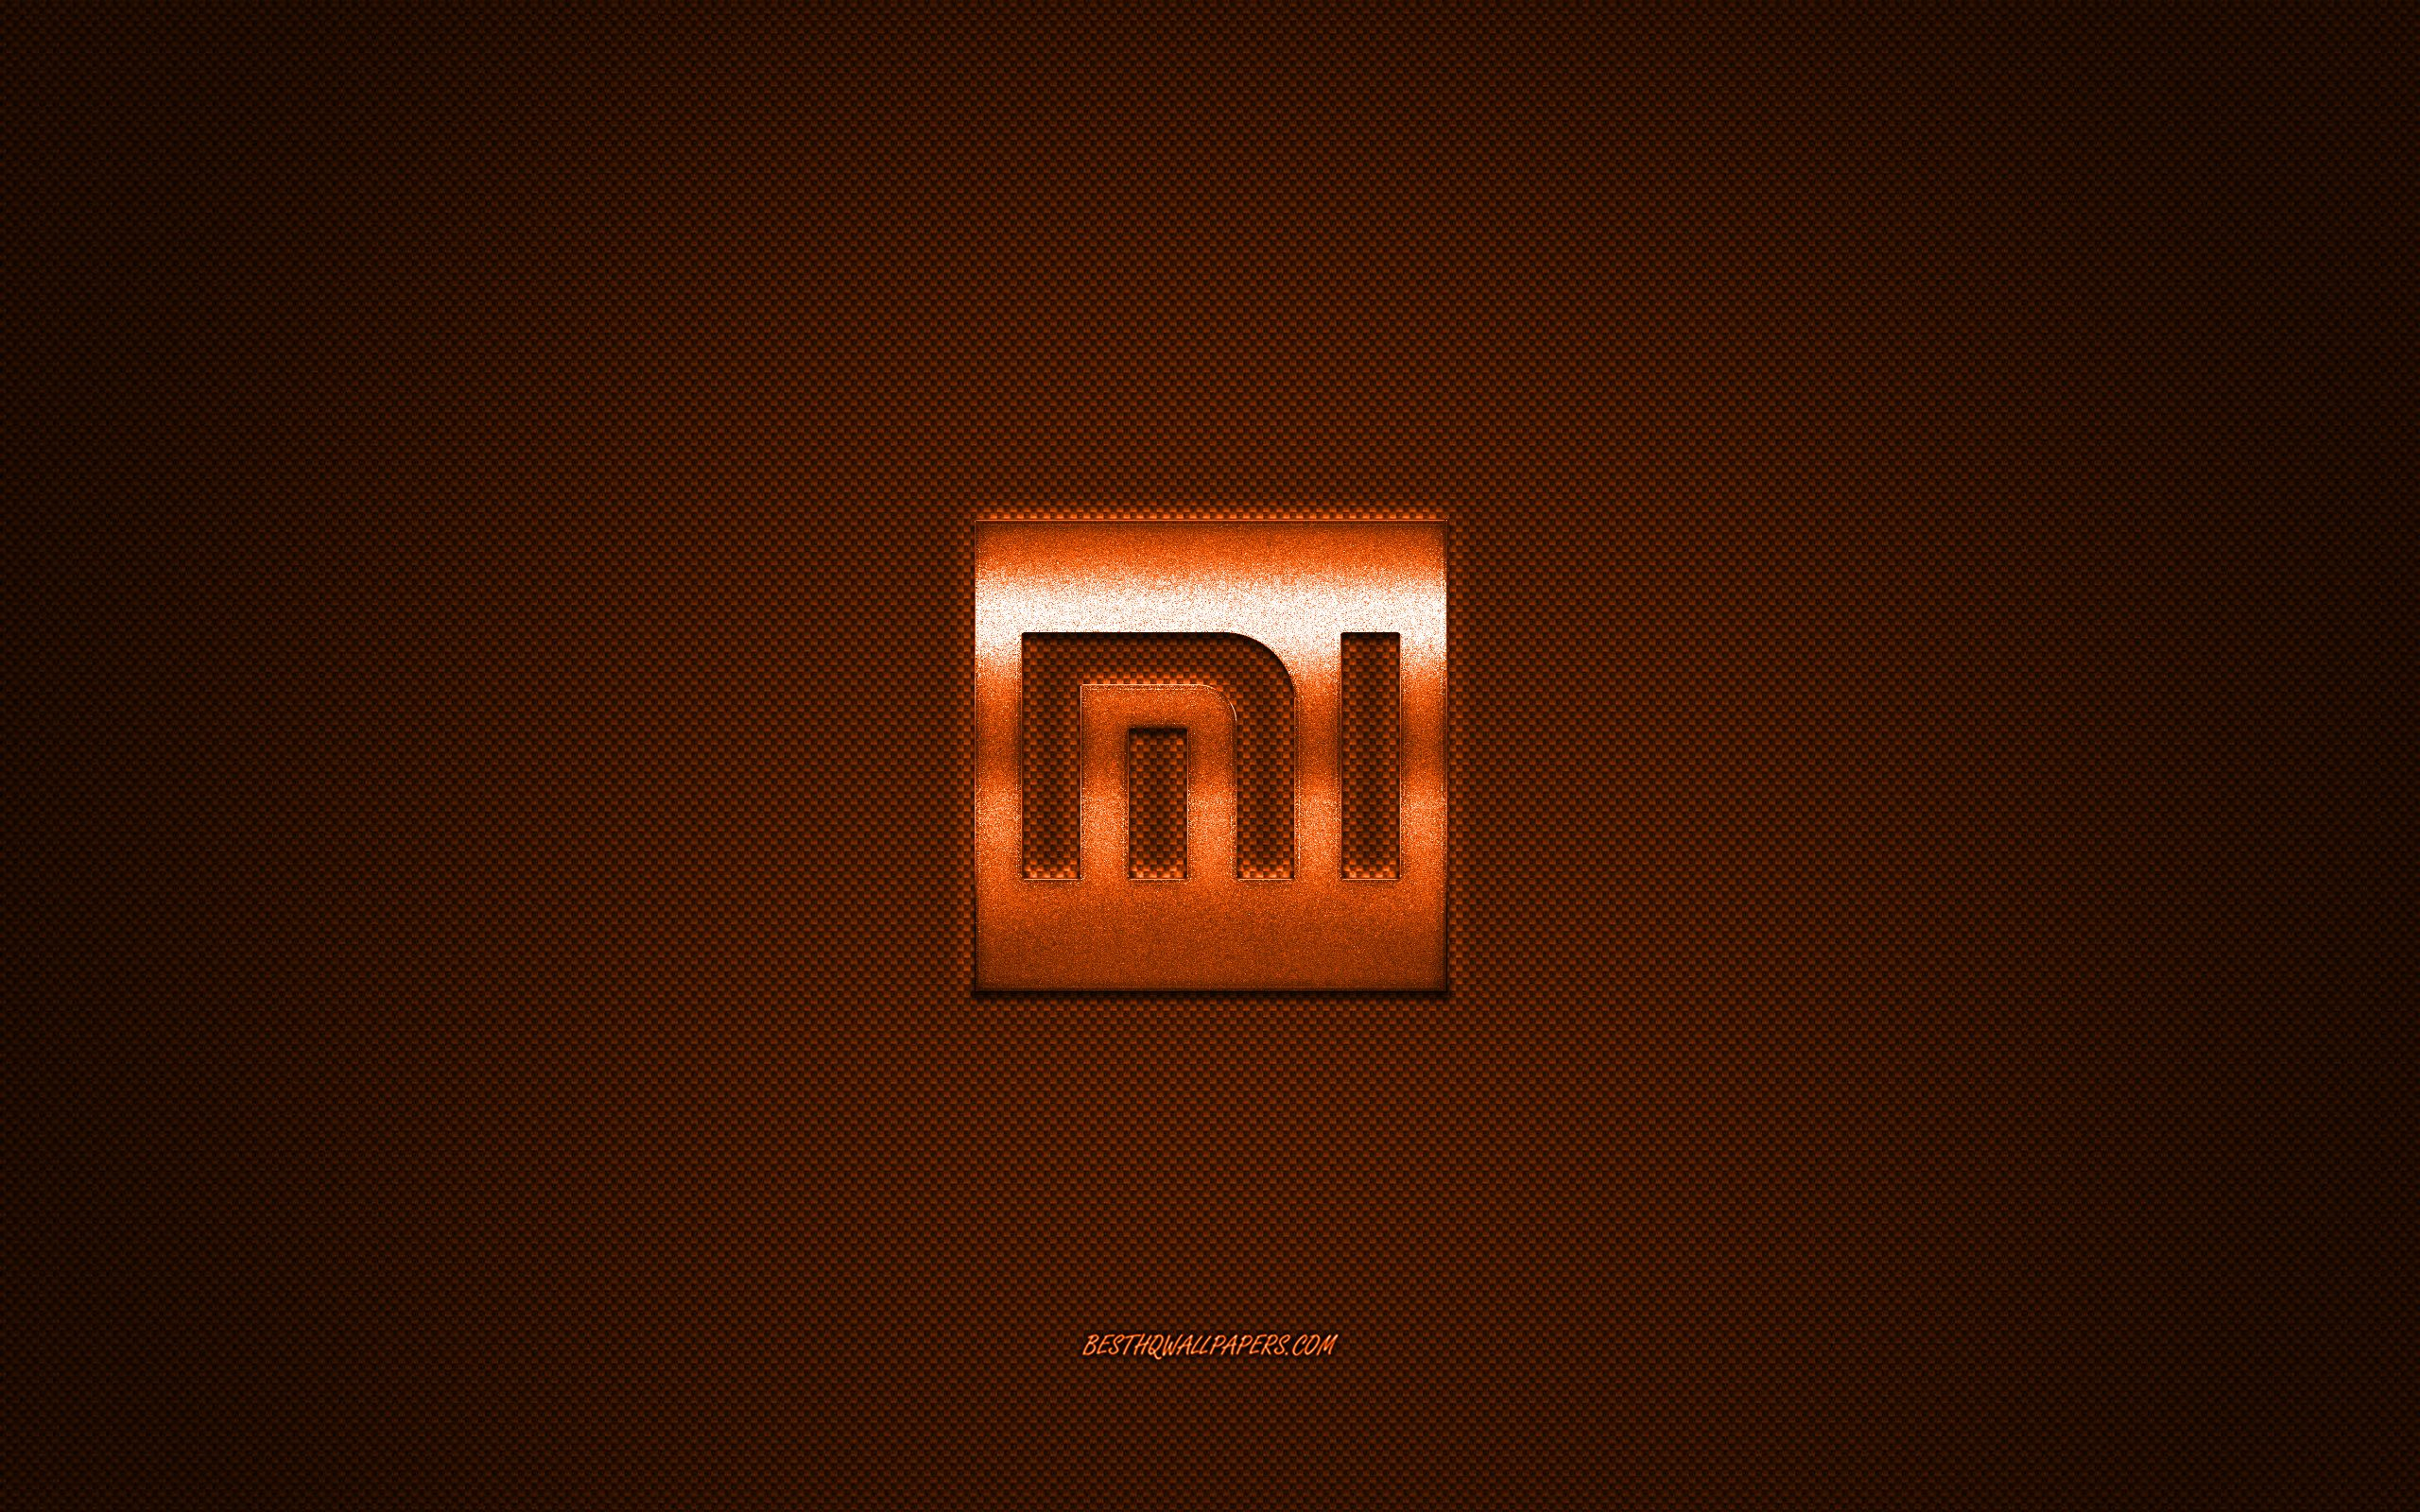 Xiaomi Logo Wallpapers Top Free Xiaomi Logo Backgrounds Wallpaperaccess